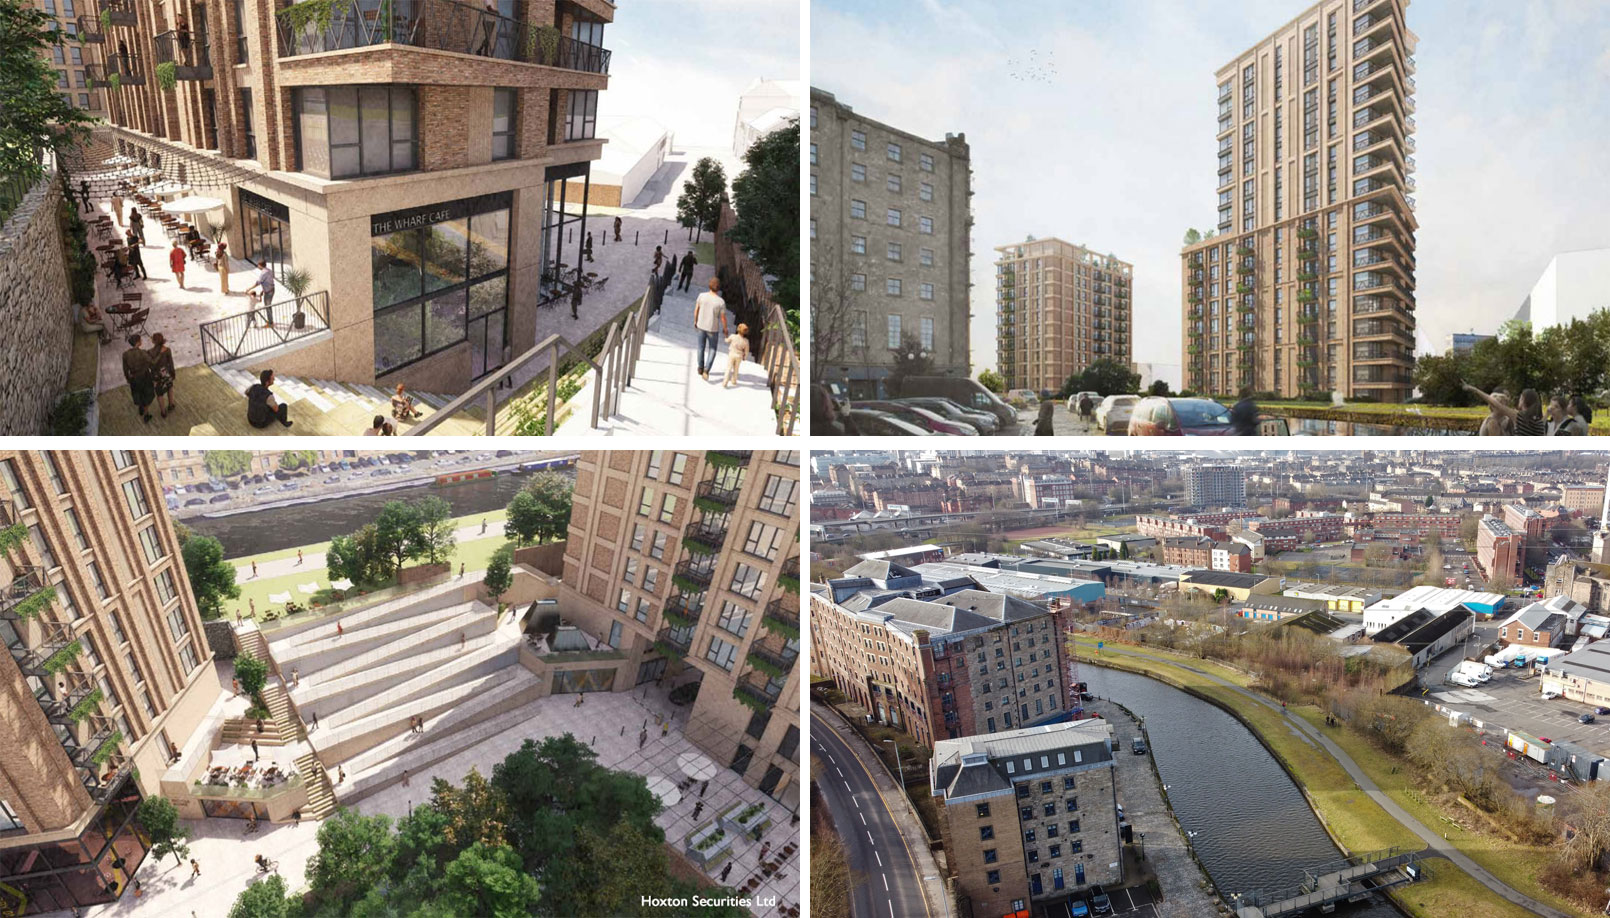 COUNCILLORS Sink Plan For 20-Storey Canalside Apartment Block